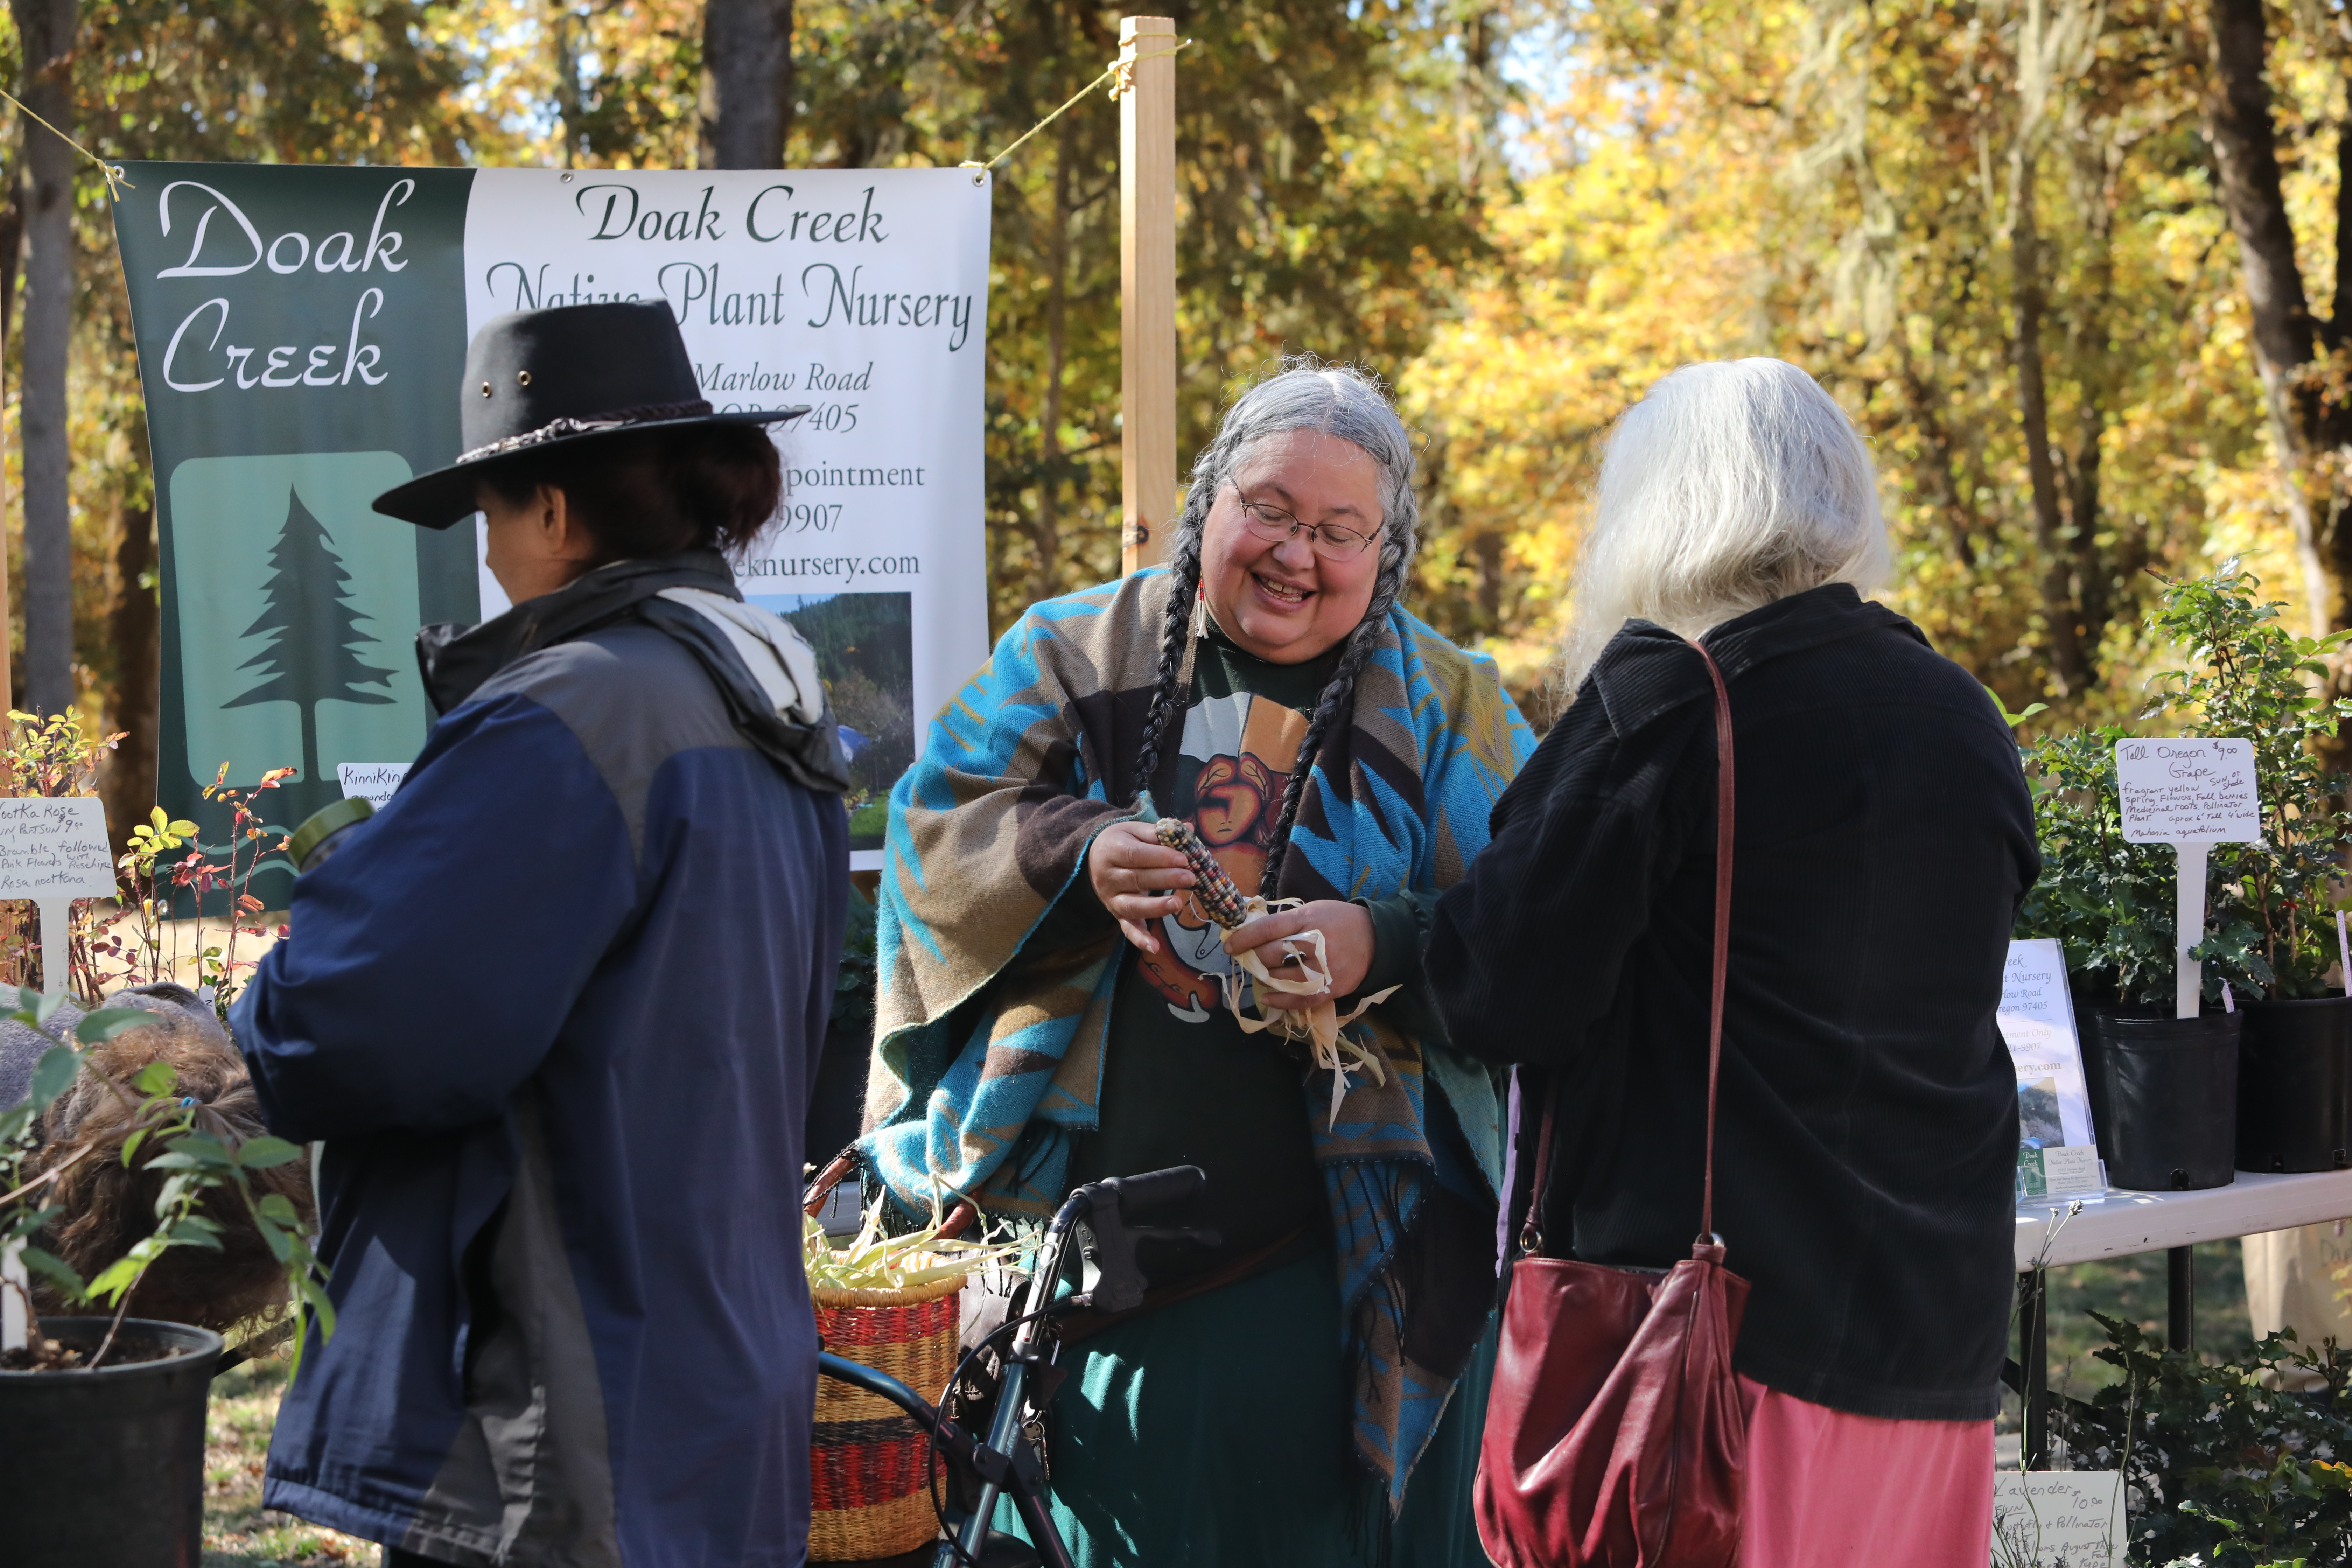 Three people in an autumnal outdoor setting attending a plant sale.